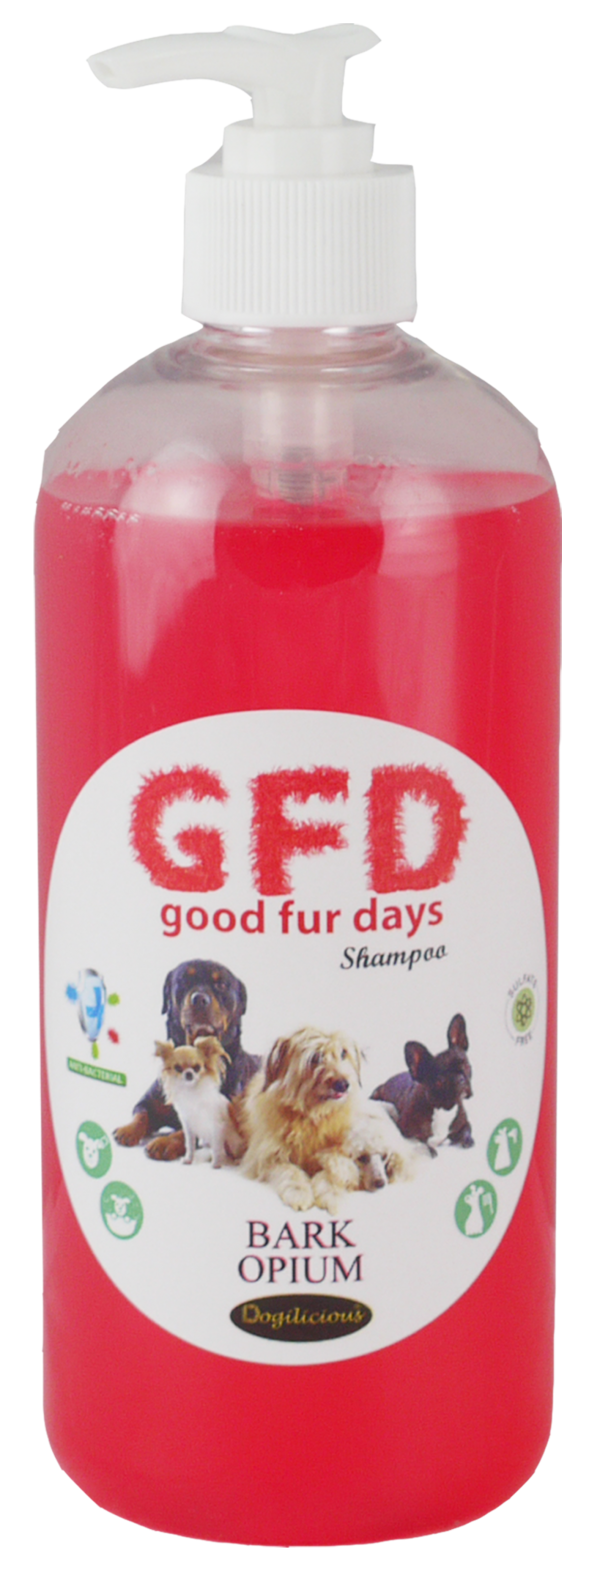 Good Fur Days Bark Opium Dog Shampoo 500ml